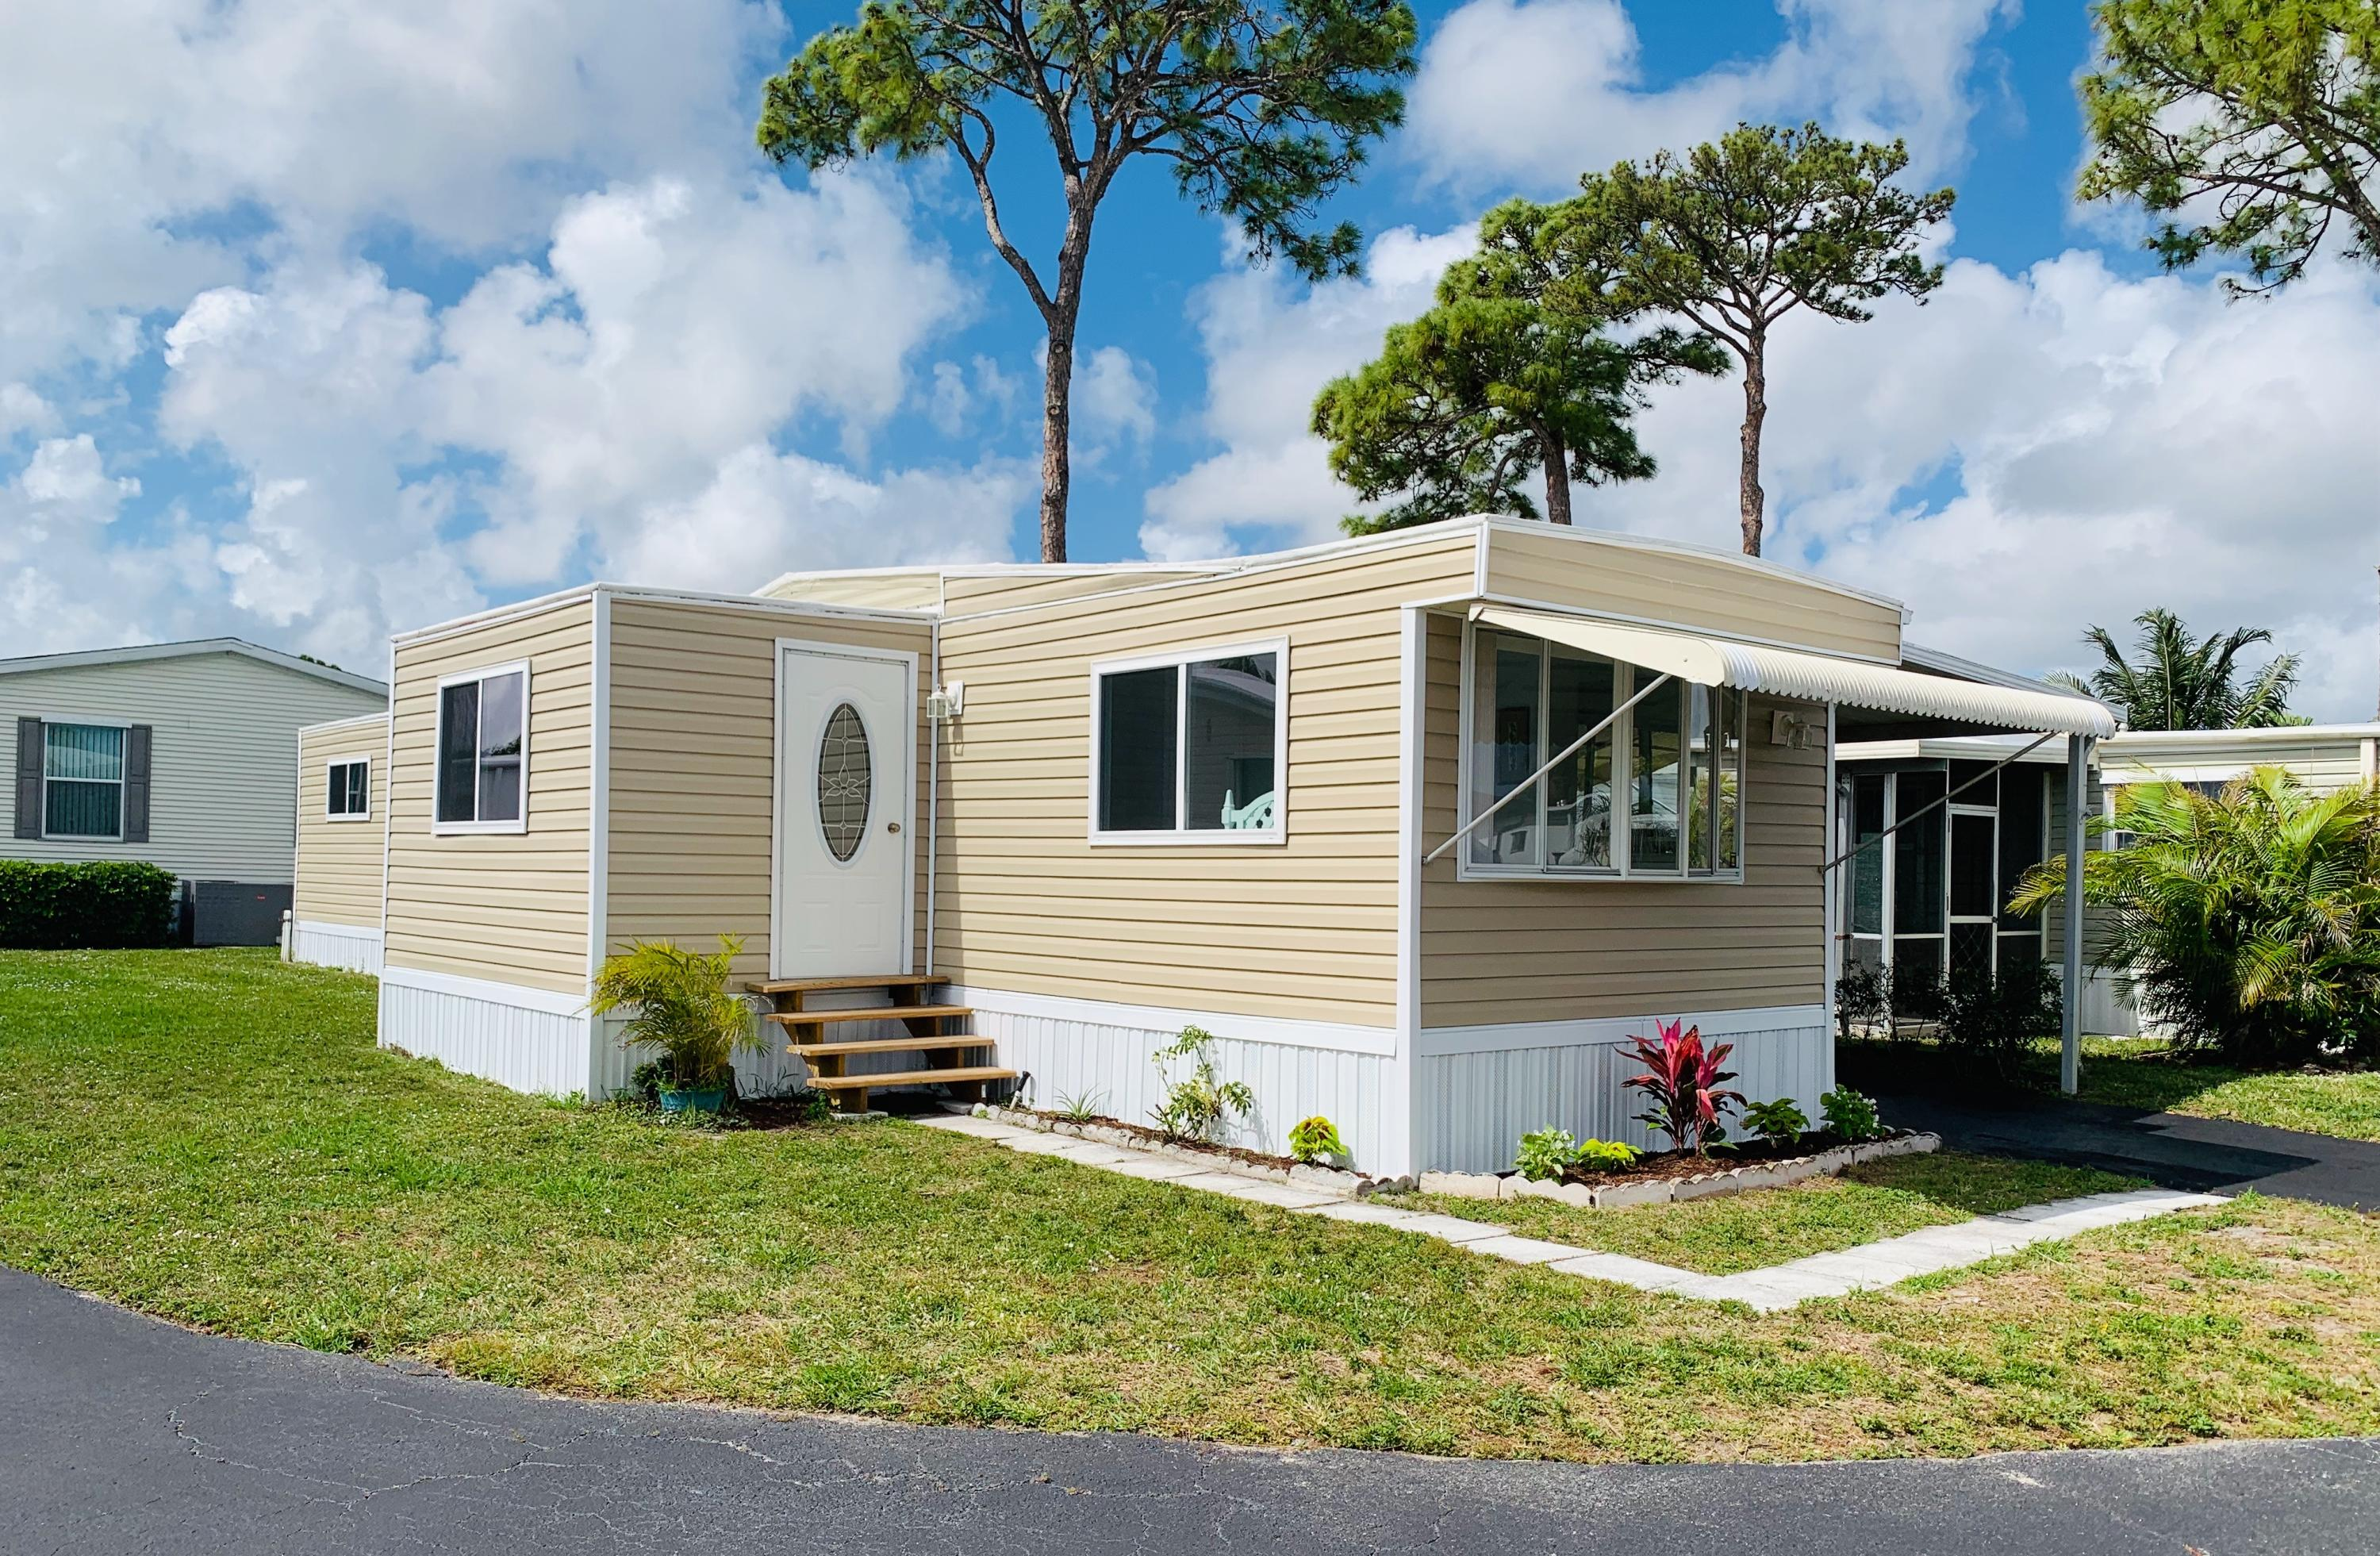 Jamaica Bay Mobile Home, Boynton Beach, Florida Homes For Sale By